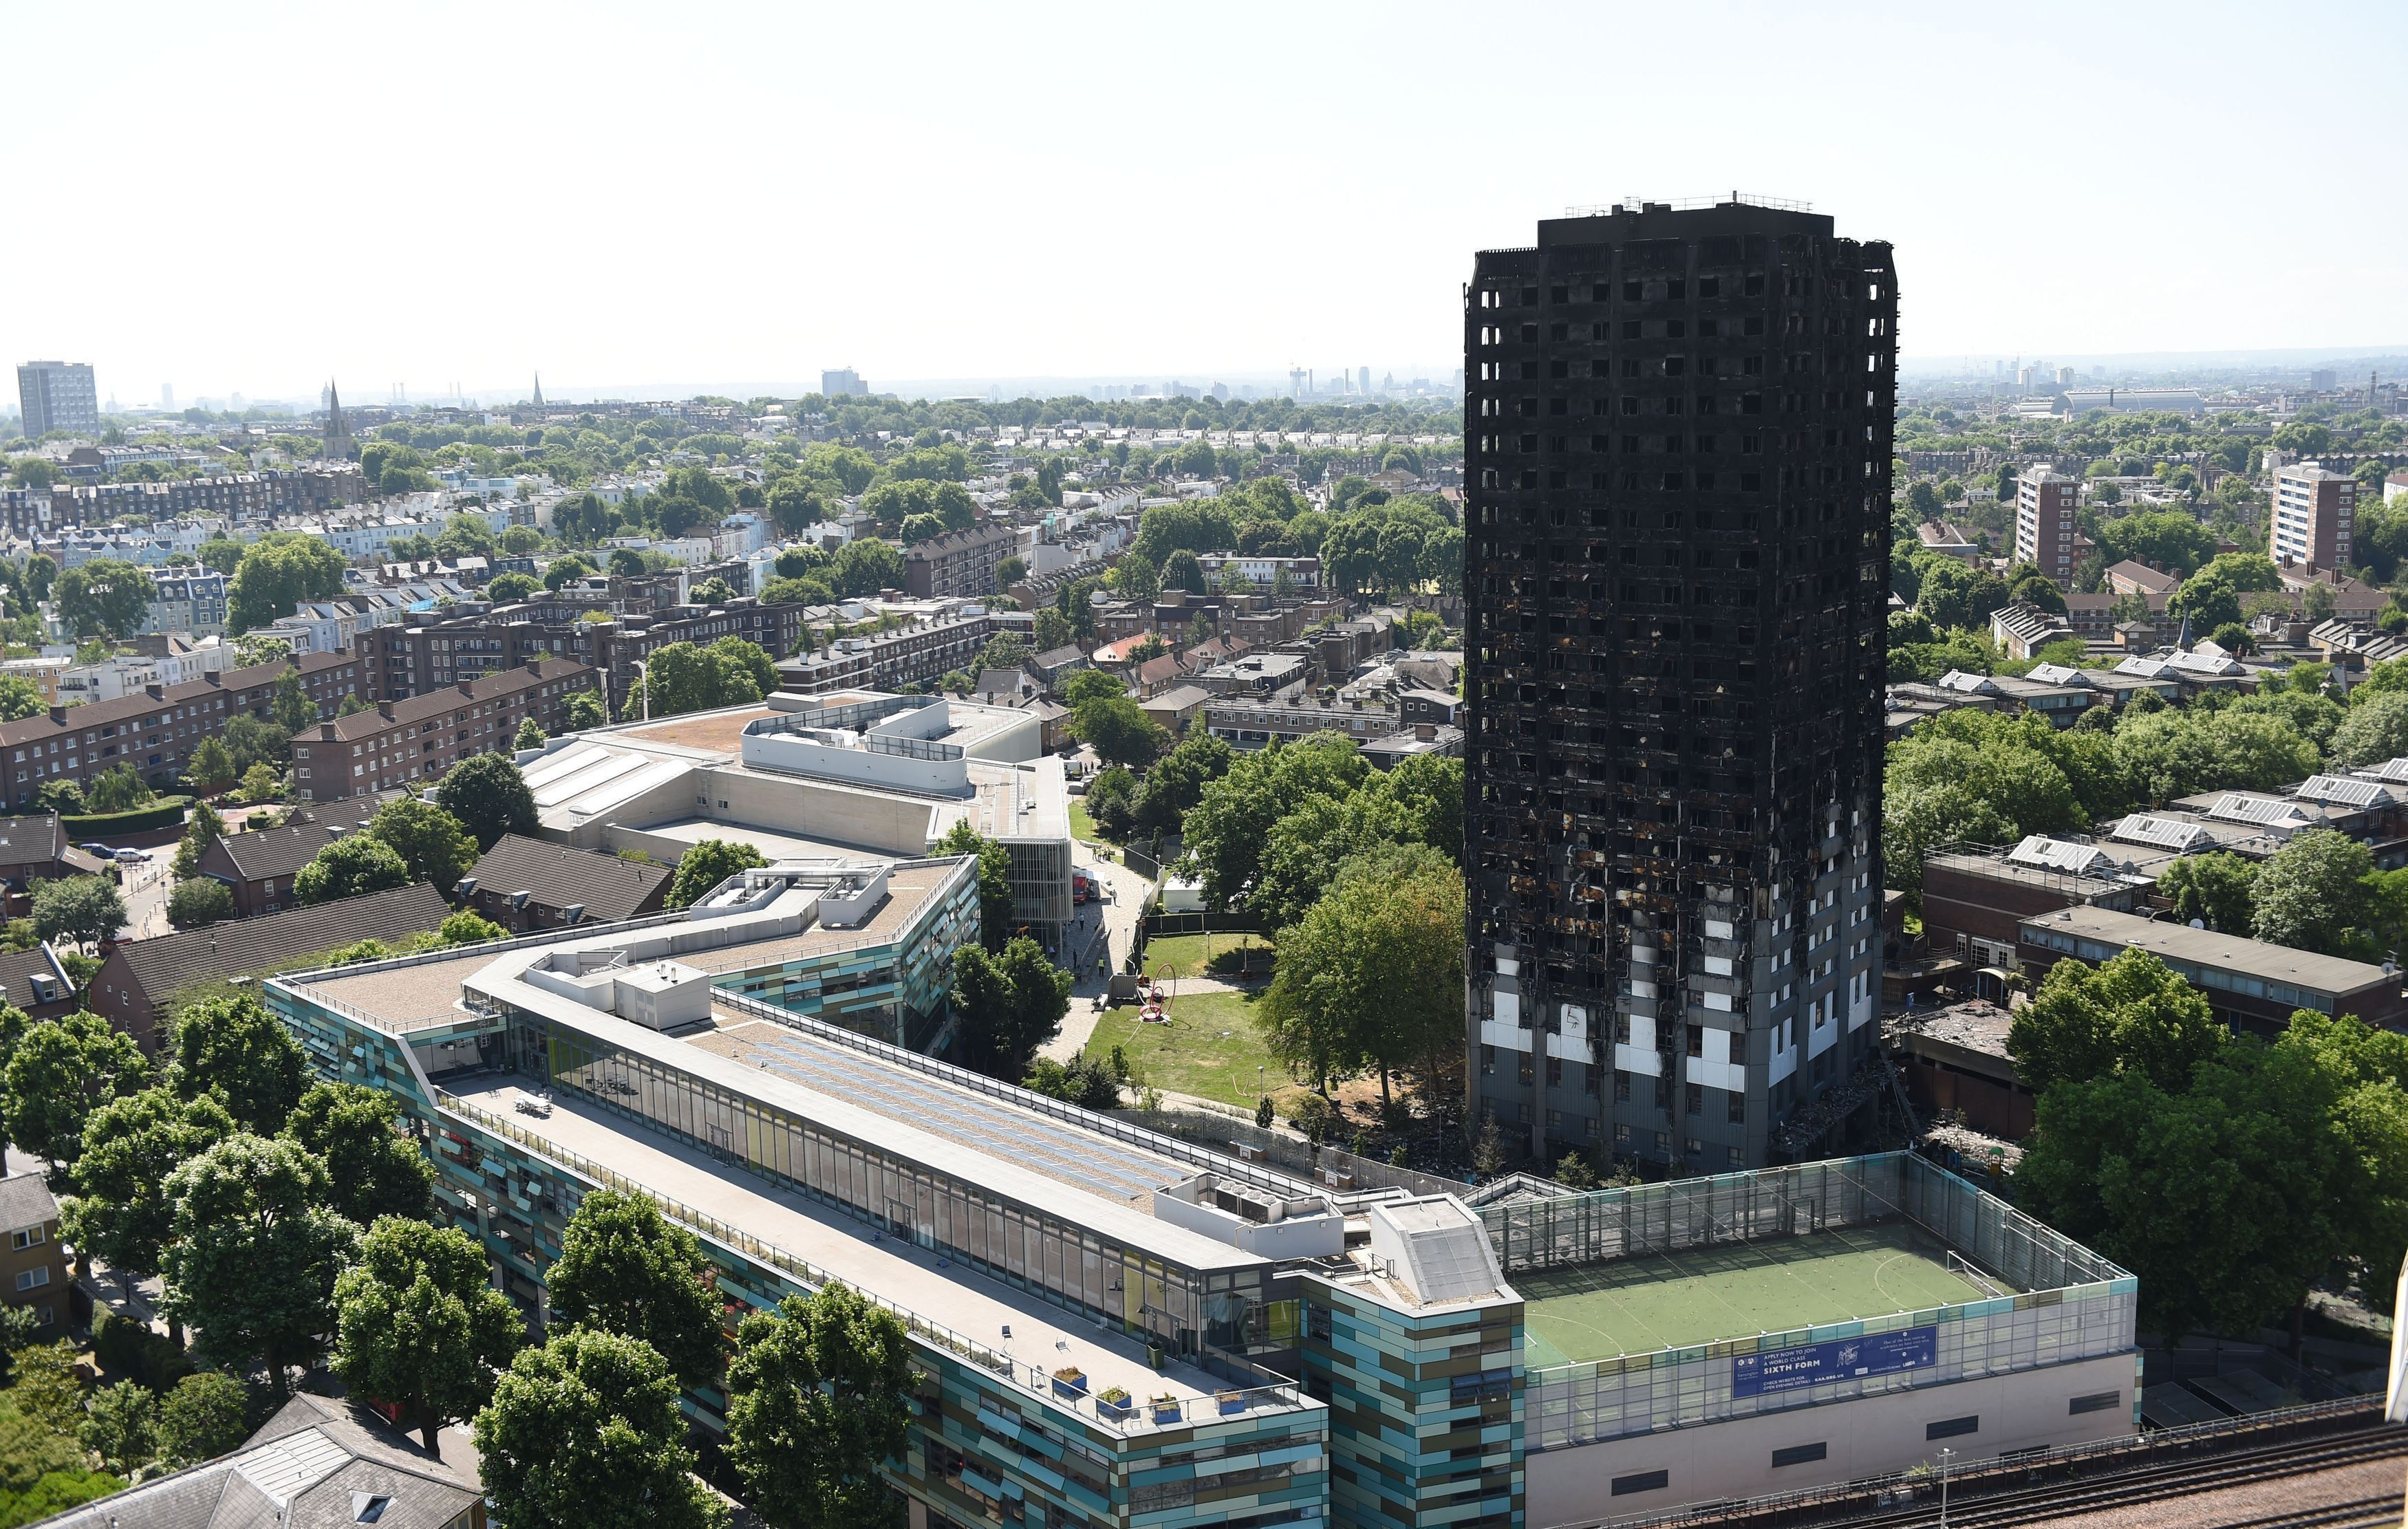 Grenfell Tower Exterior Was Safer Before Refurbishment, Inquiry